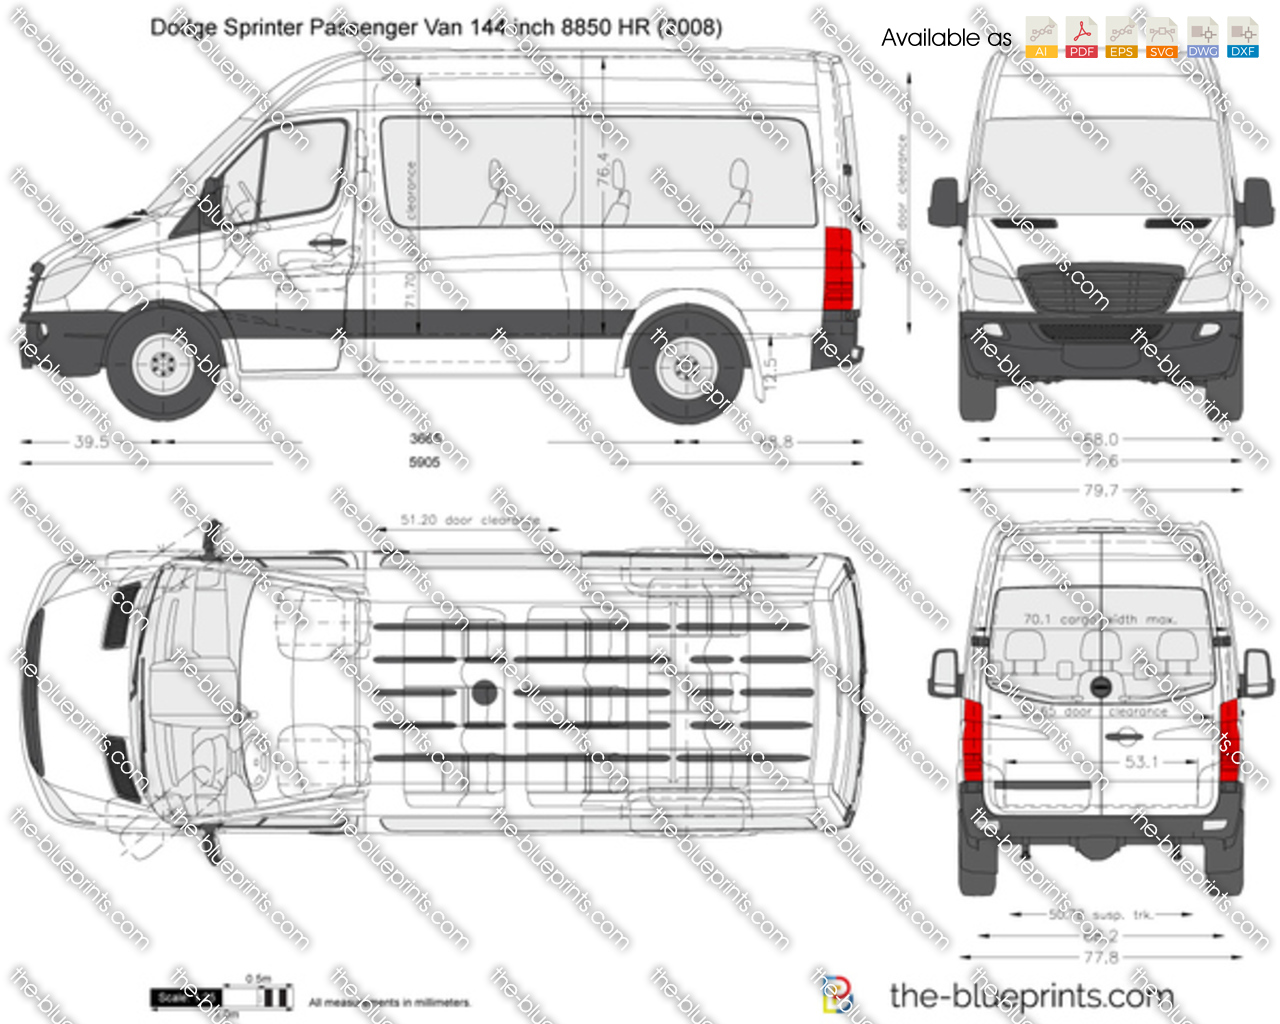 dodge sprinter passenger van 144 inch 8850 hr vector drawing